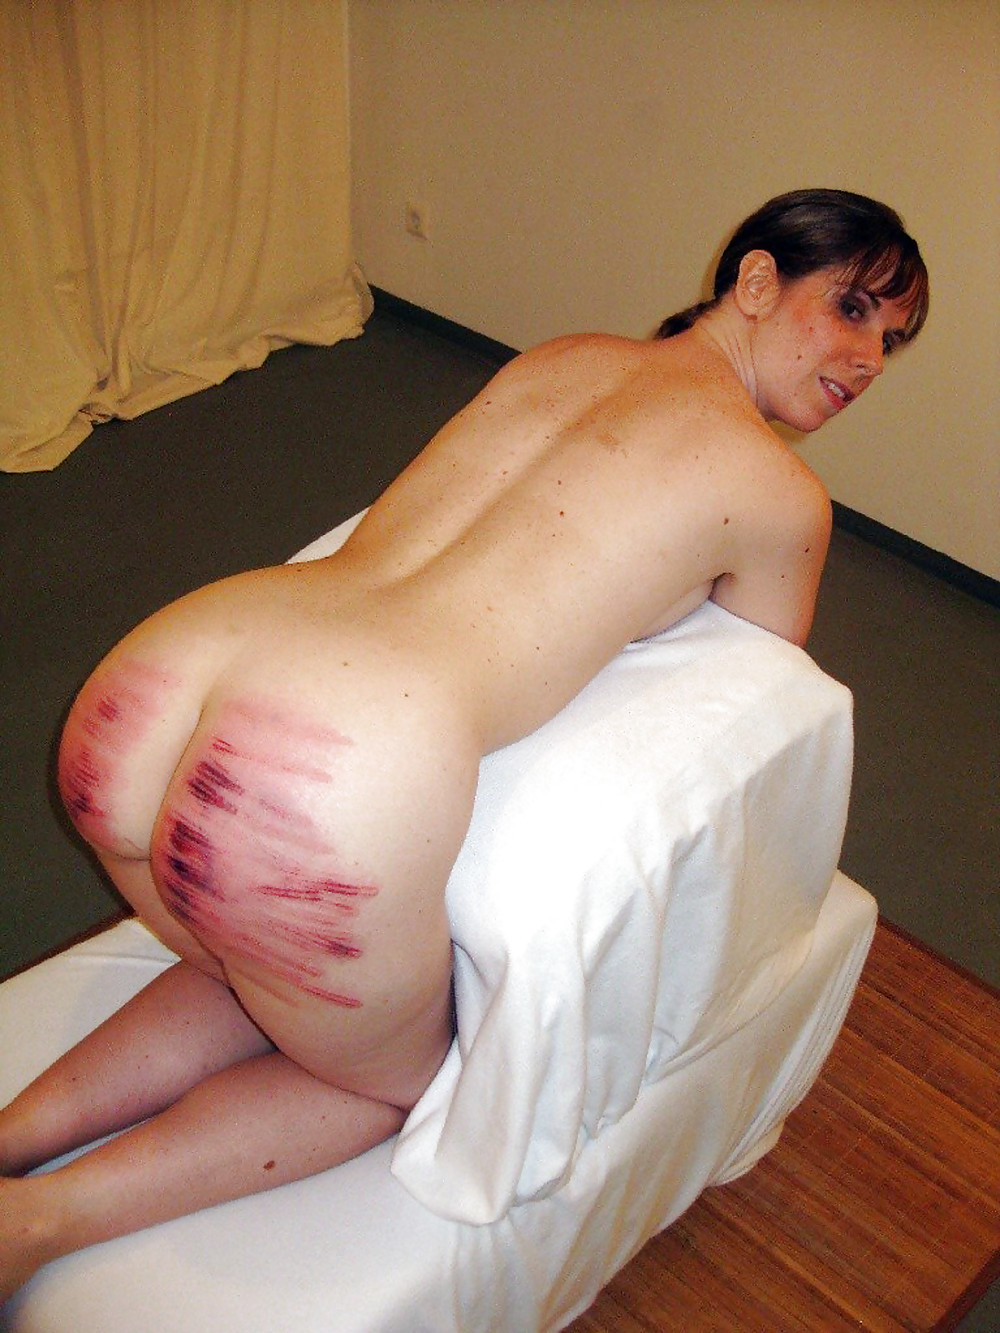 Straight guy full self punishment: fucked, ass to mouth, plug, spank, flog